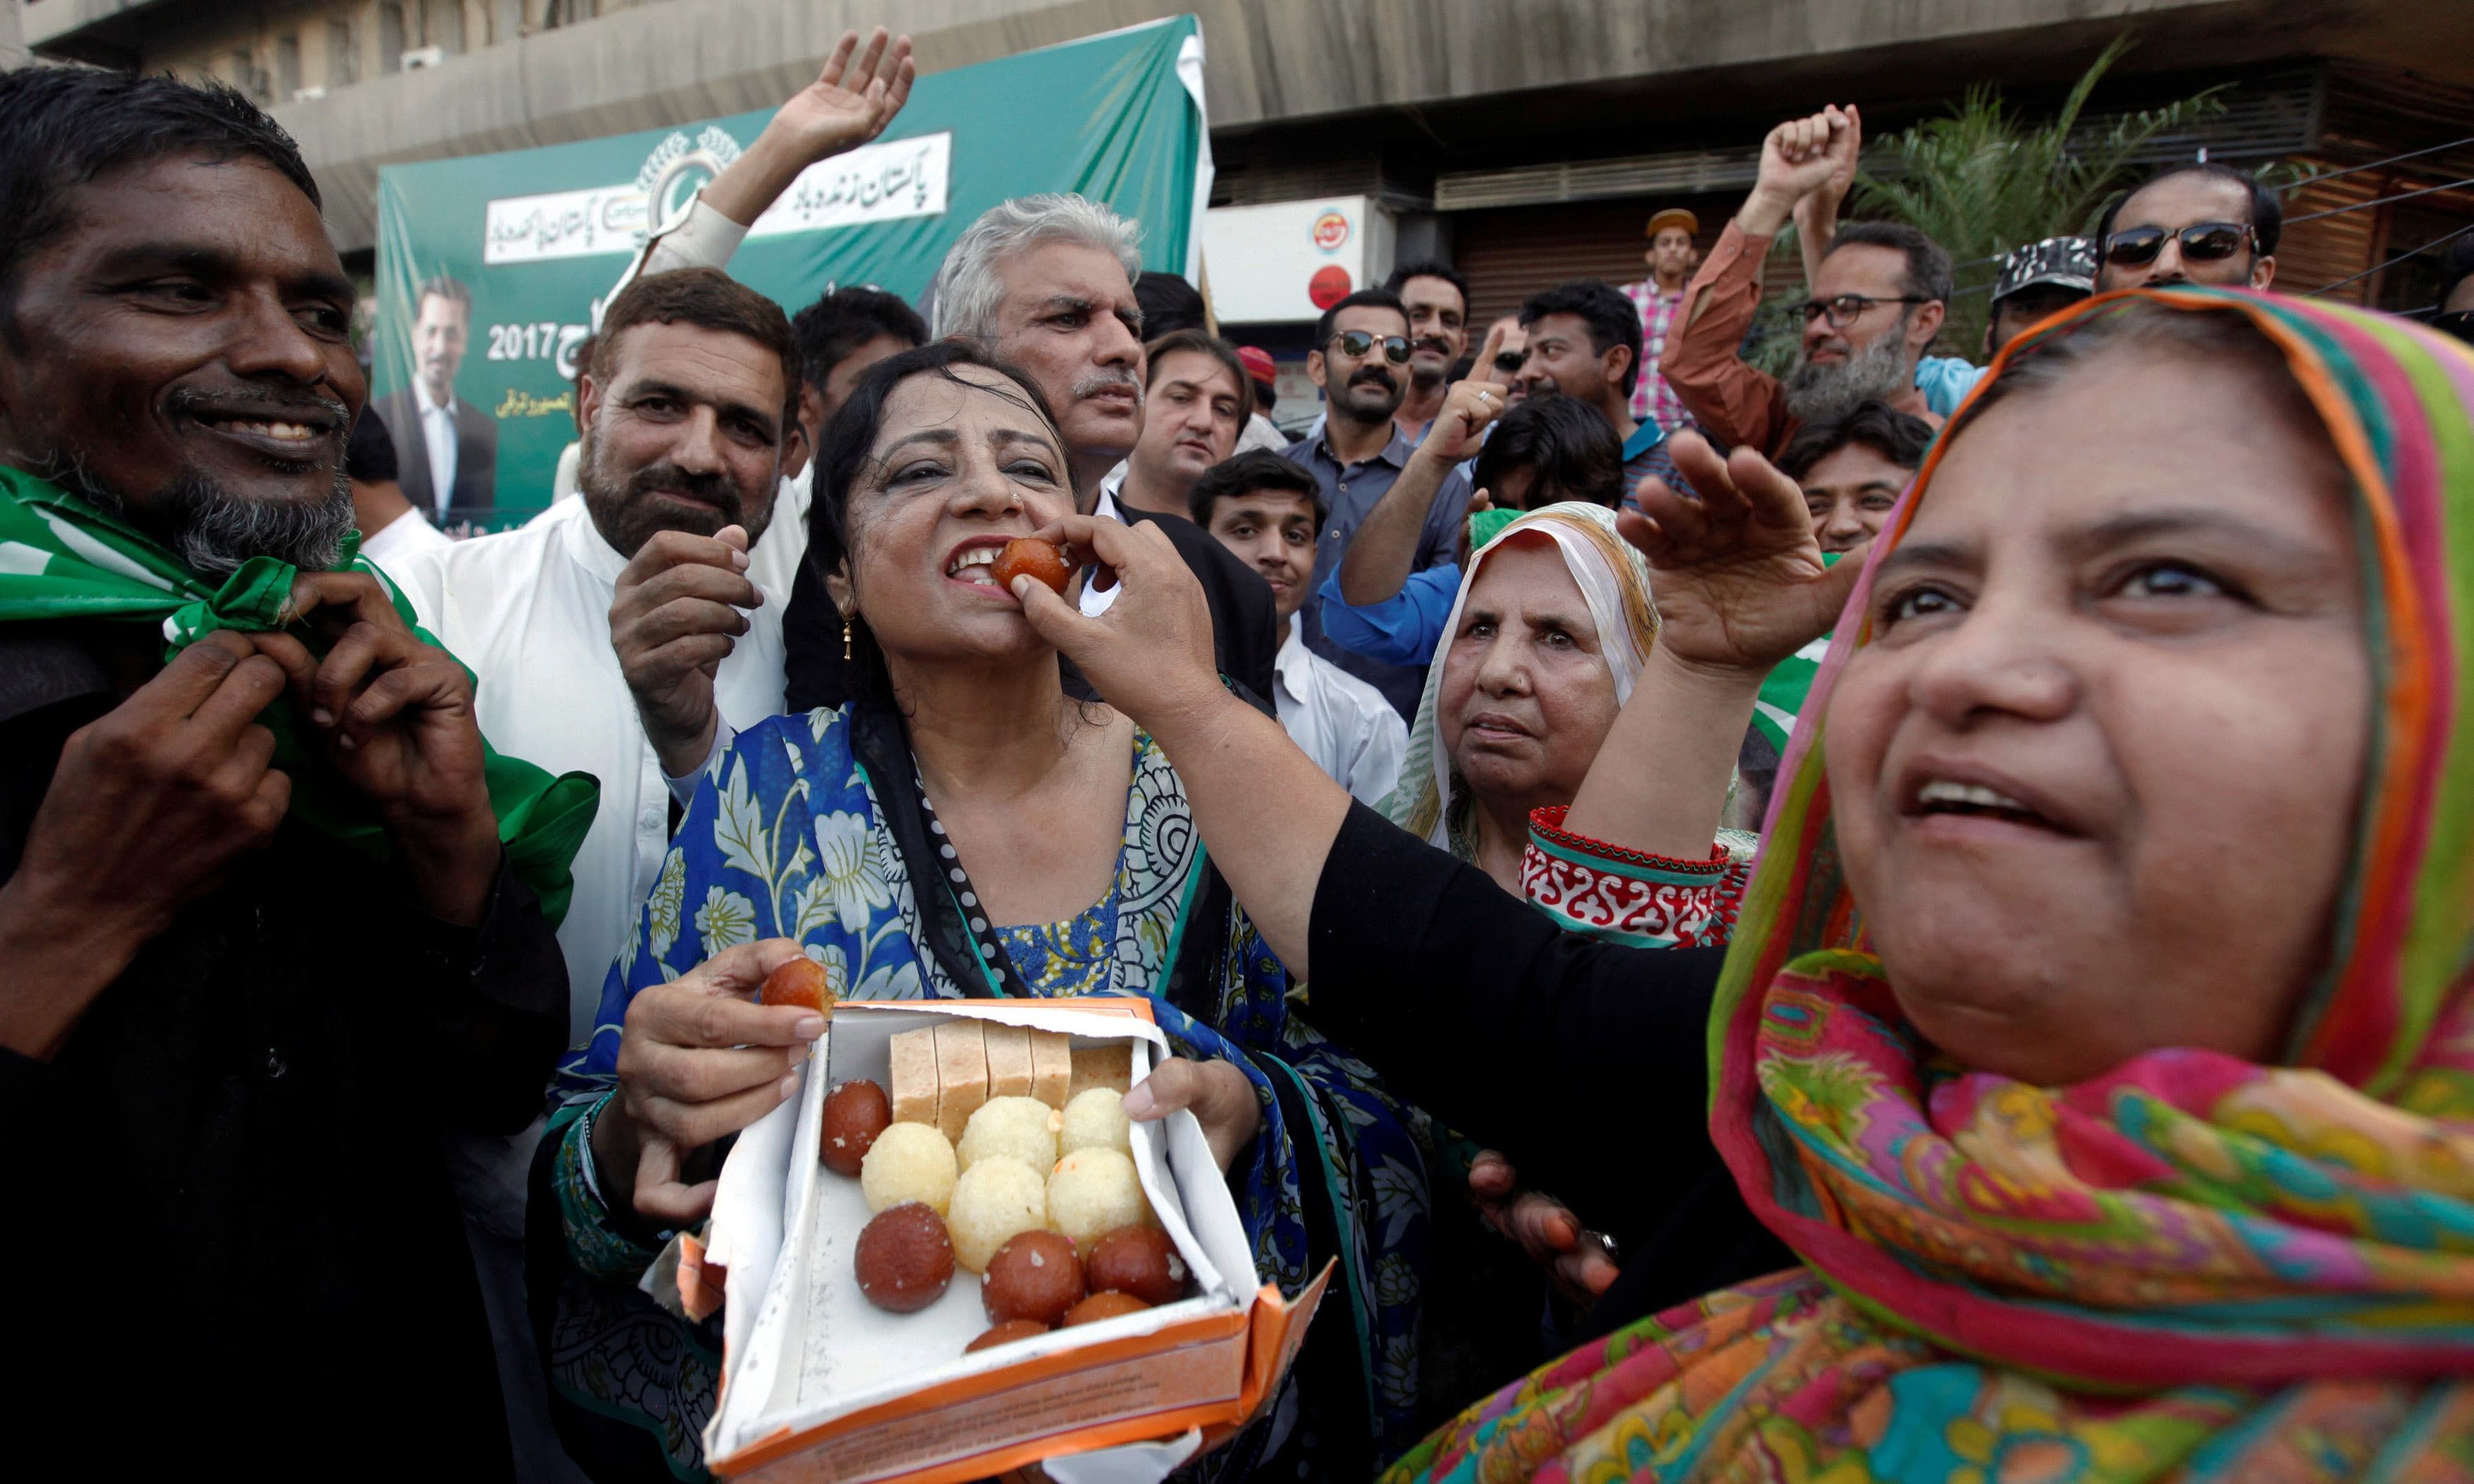 Supporters of PM Nawaz Sharif distribute sweets following Supreme Court's decision. ─Reuters